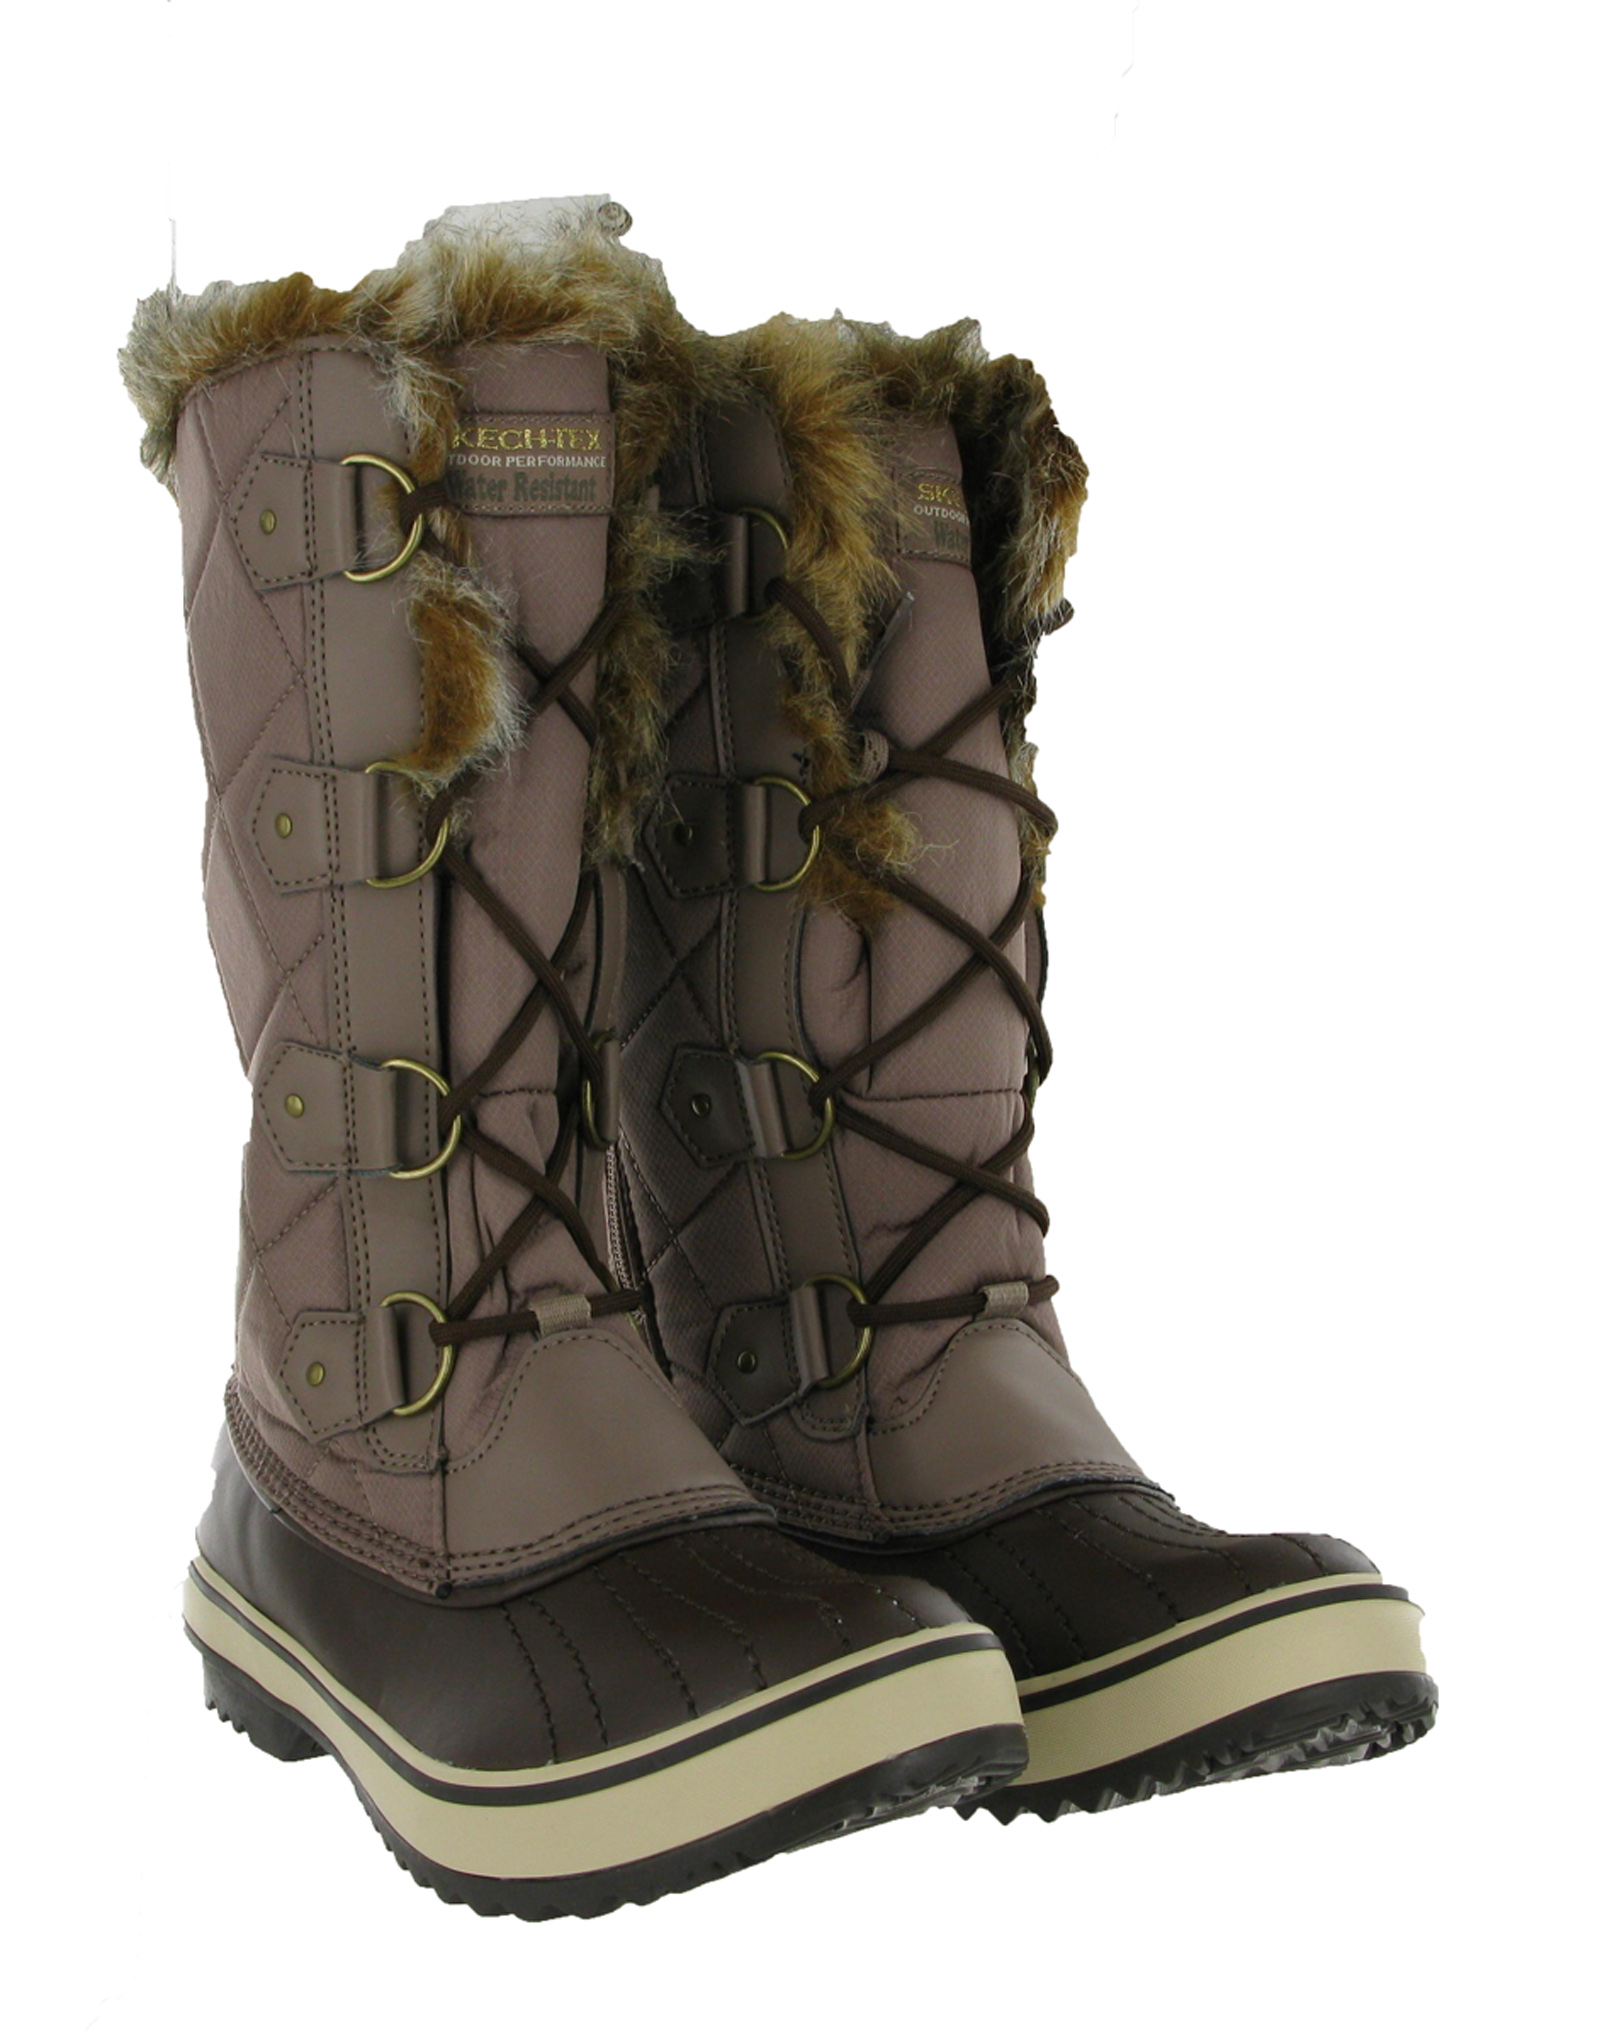 Winter Boots Size 13 Women | Santa Barbara Institute for ...